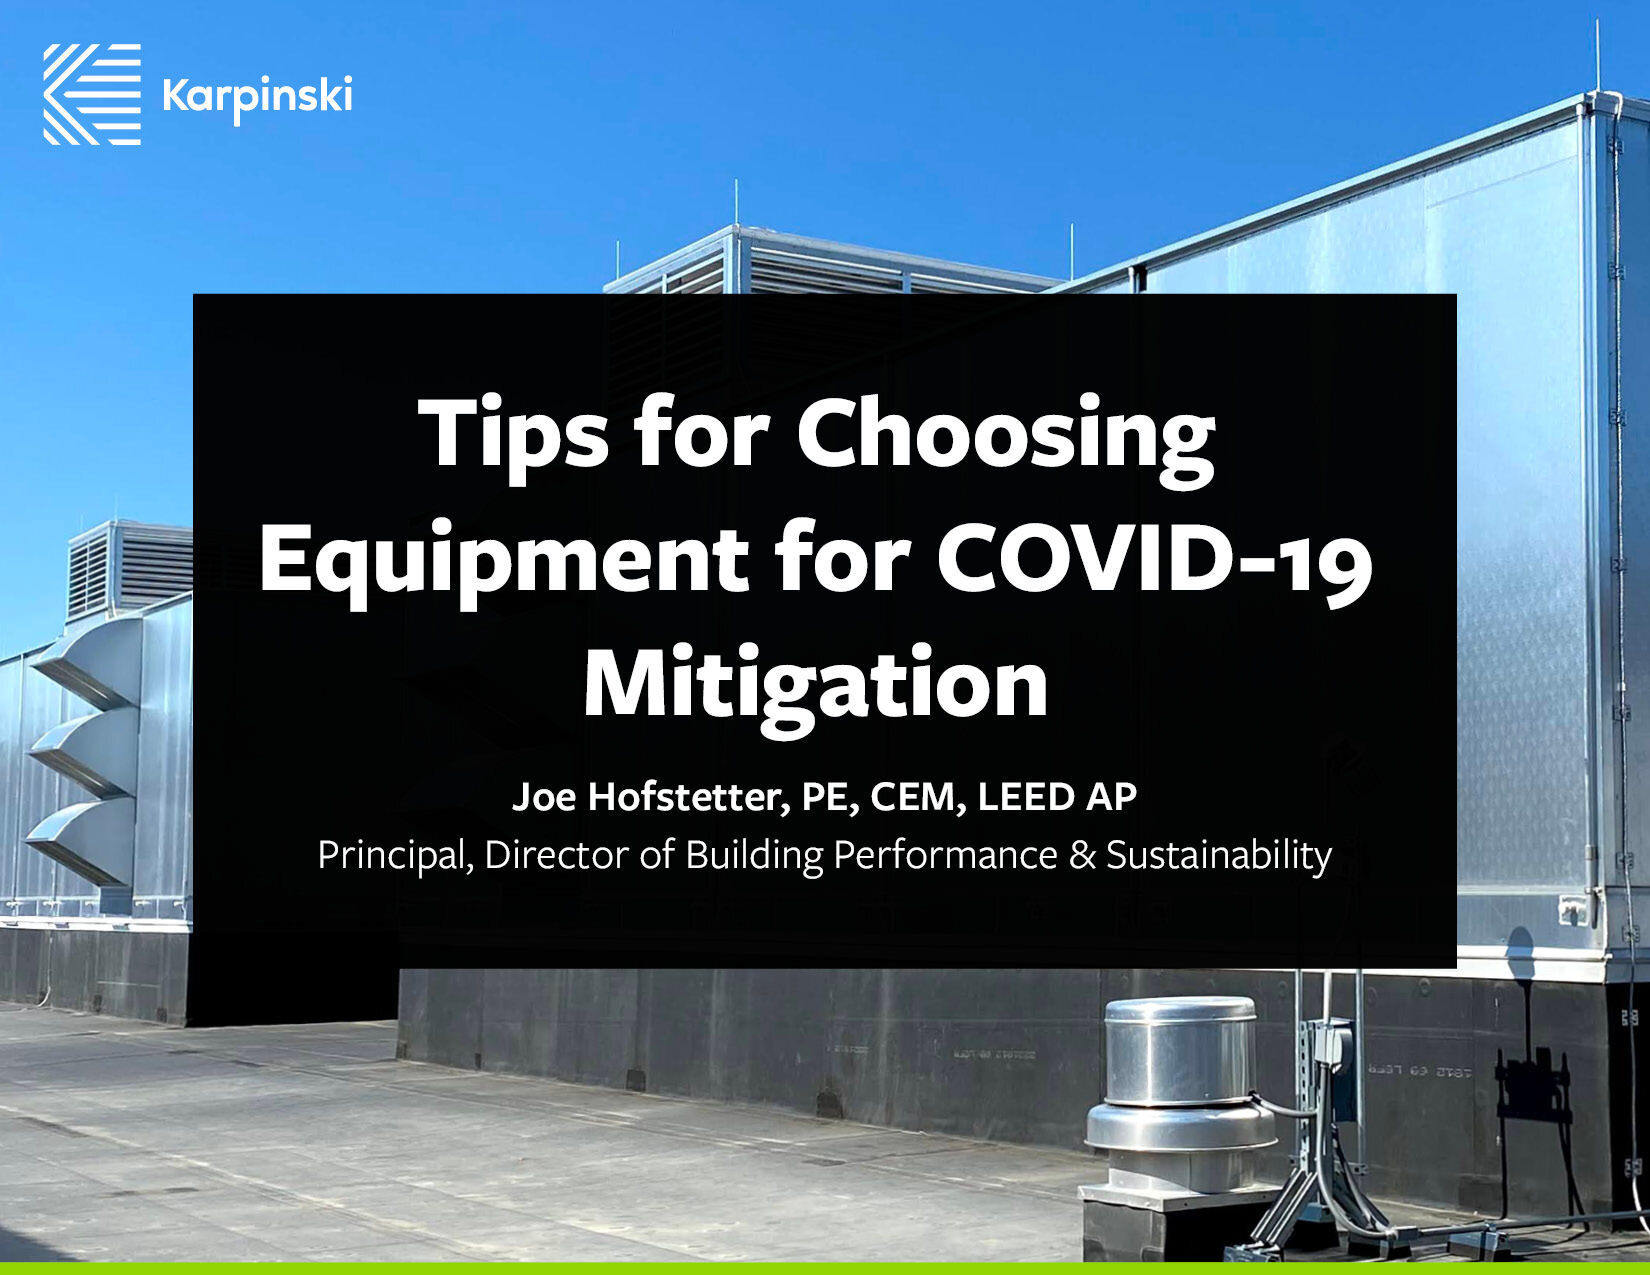 Ebook - tips for Choosing Equipment for COVID-19 Migration